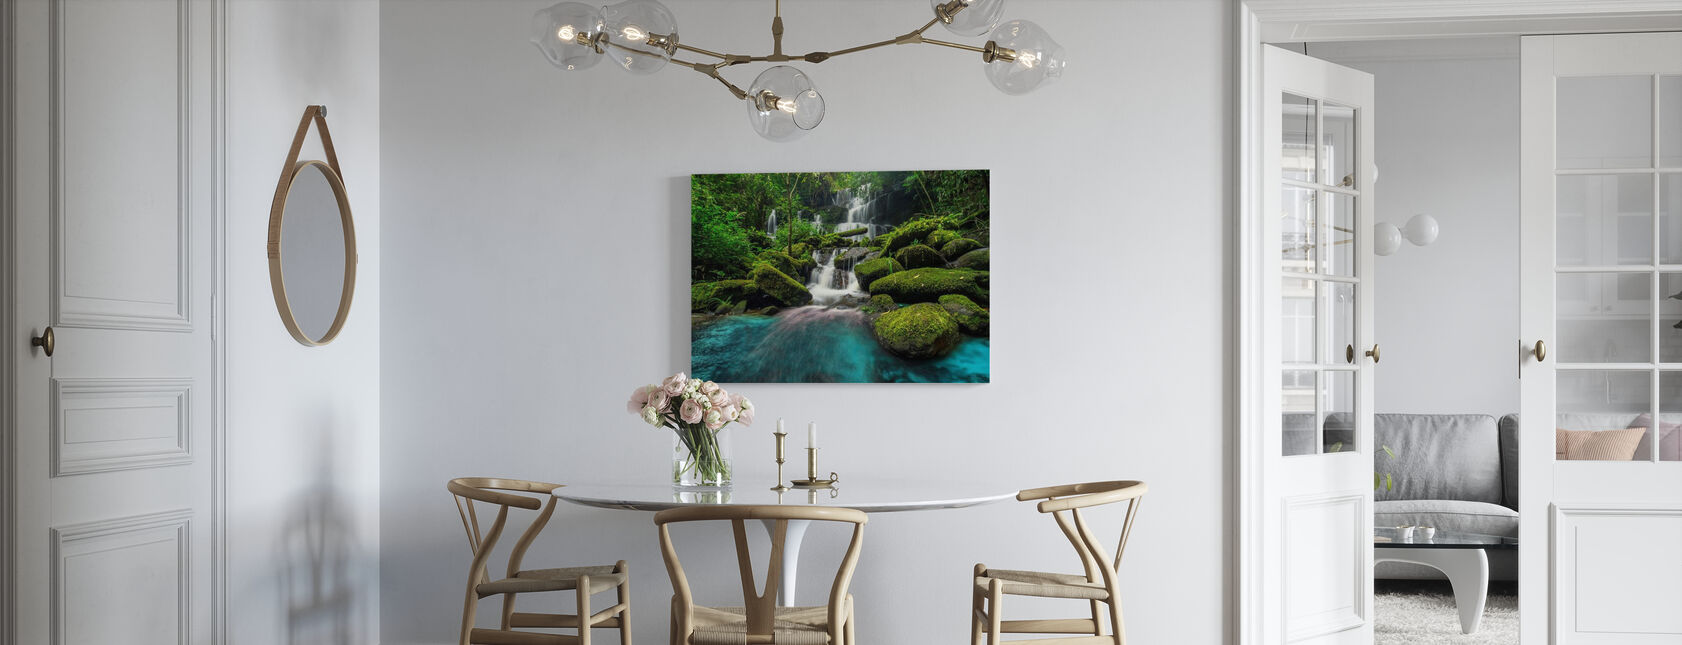 Waterfall in Green Forest - Canvas print - Kitchen